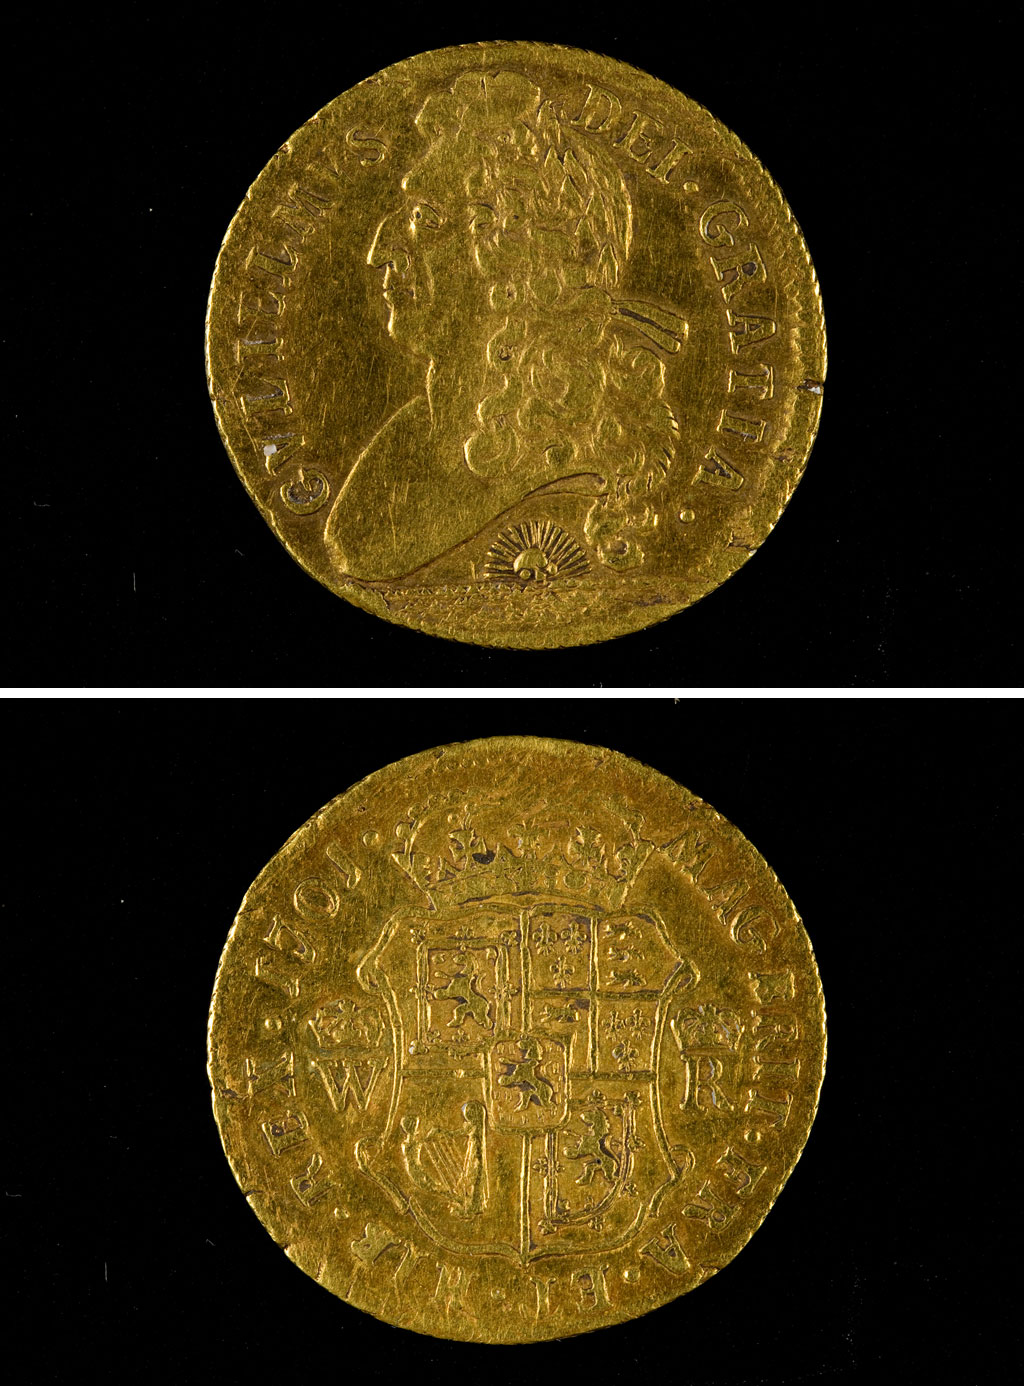 a photo of both sides of a gold coin with the side profile of a king with a hooked nose